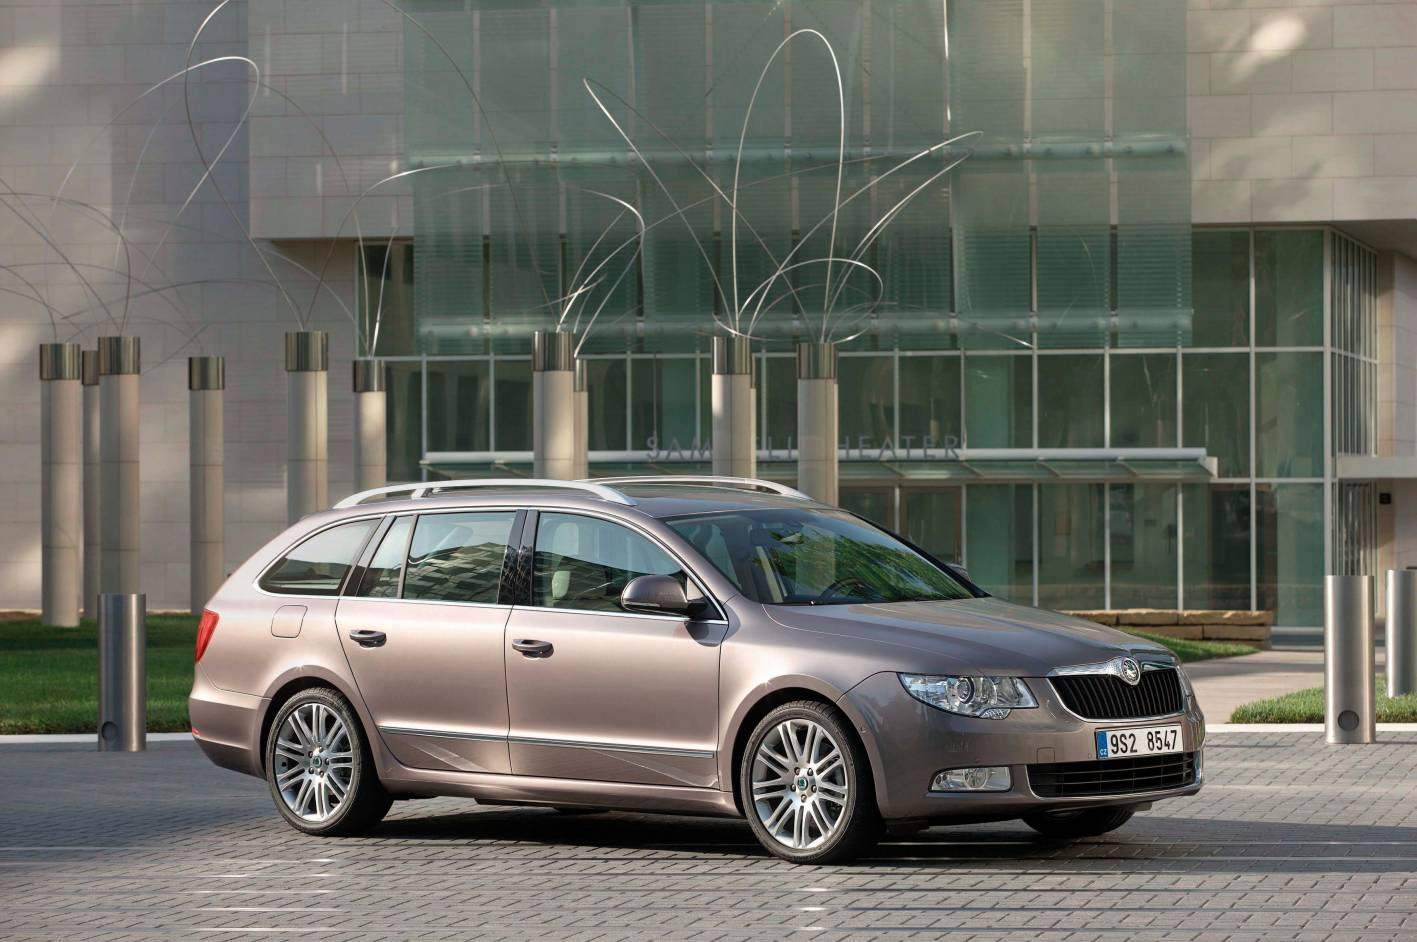 Review Skoda Superb Elegance Tdi Wagon Review And Road